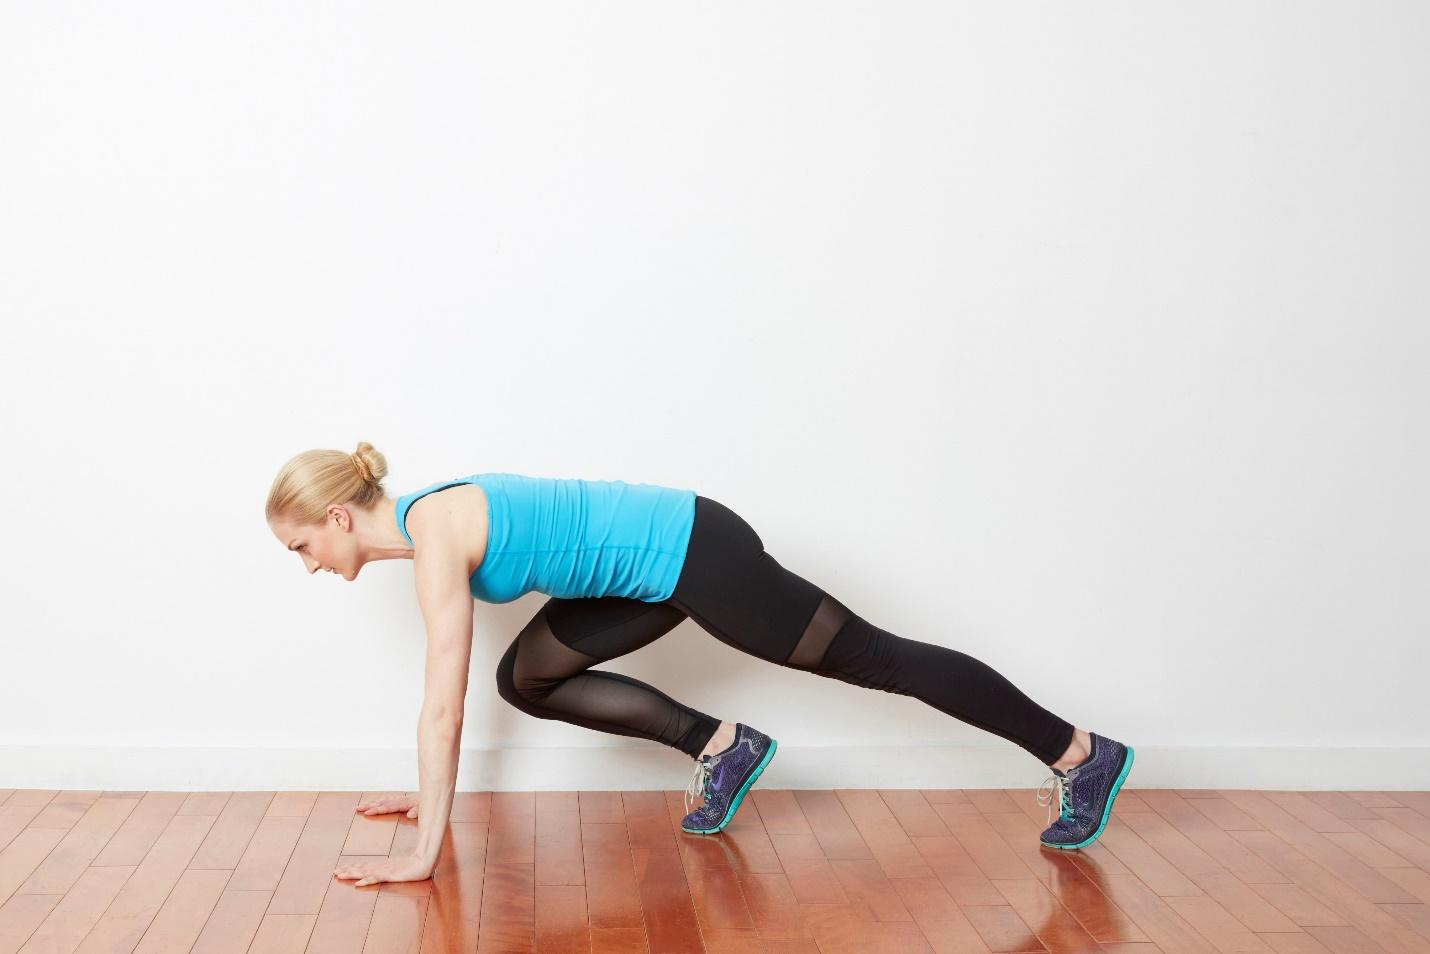 How to Do Mountain Climbers: Techniques, Benefits, Variations